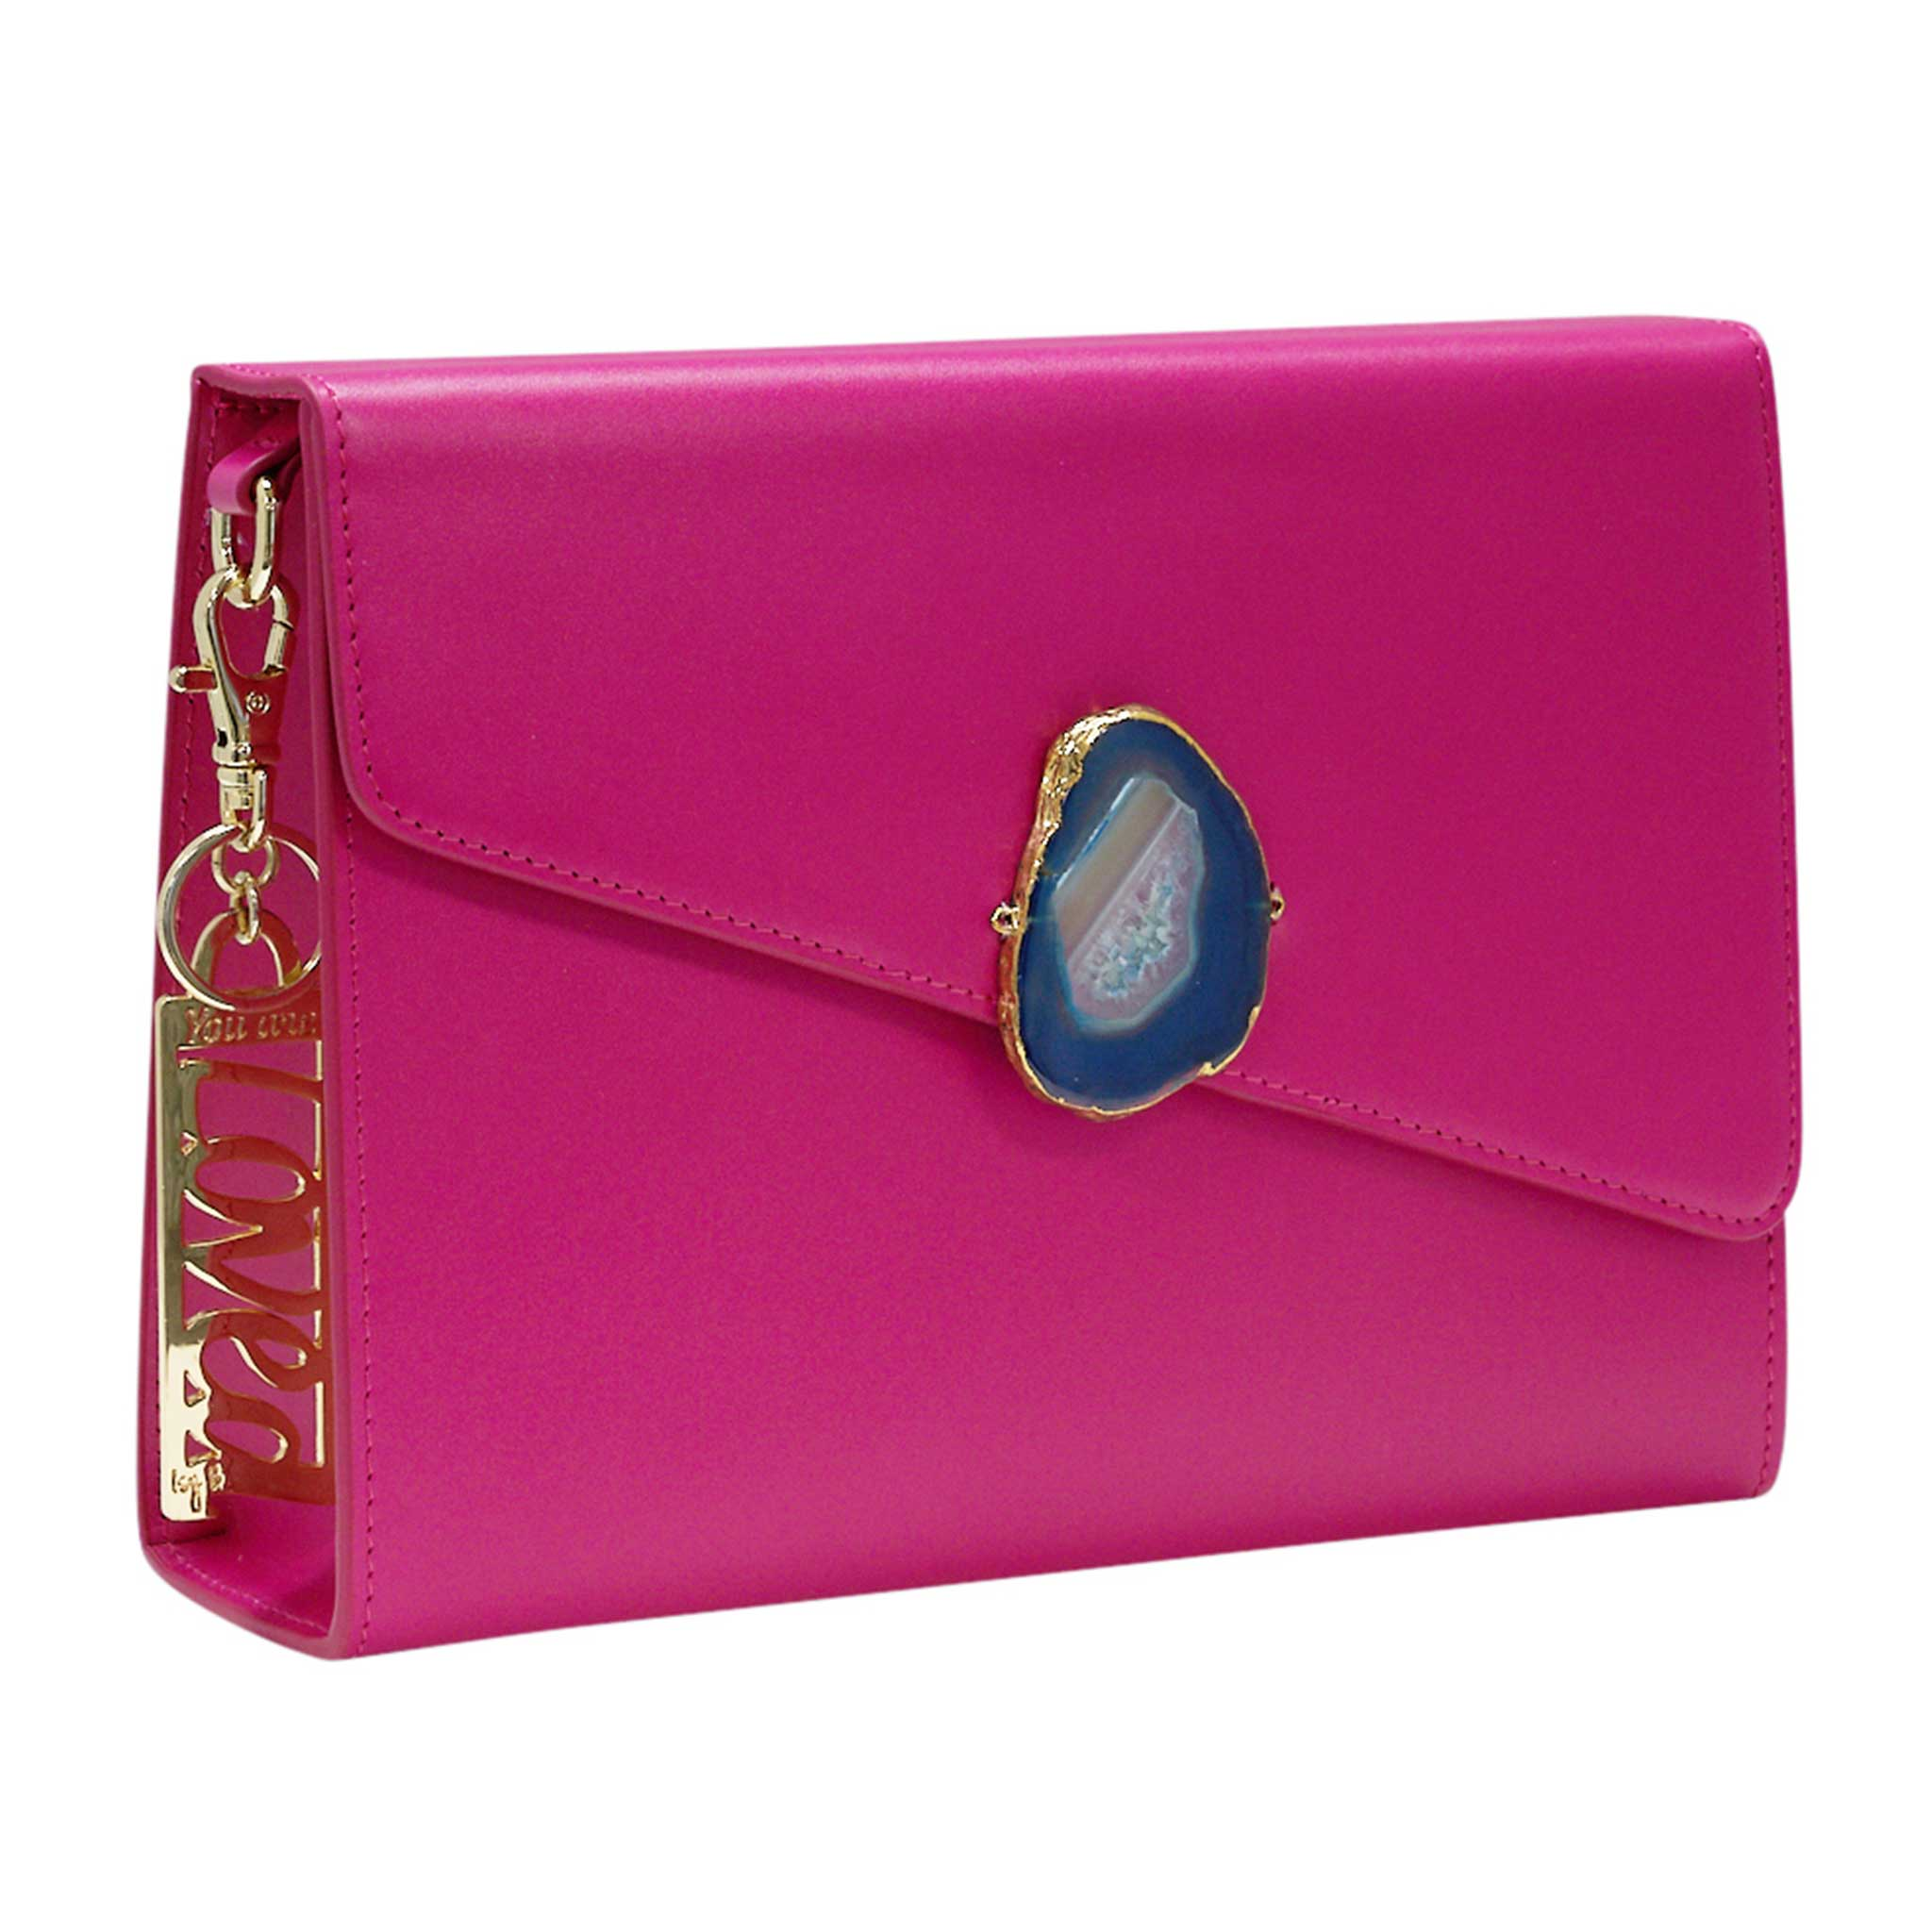 LOVED BAG - PINK RUBY LEATHER WITH BLUE AGATE - 1.01.002.018